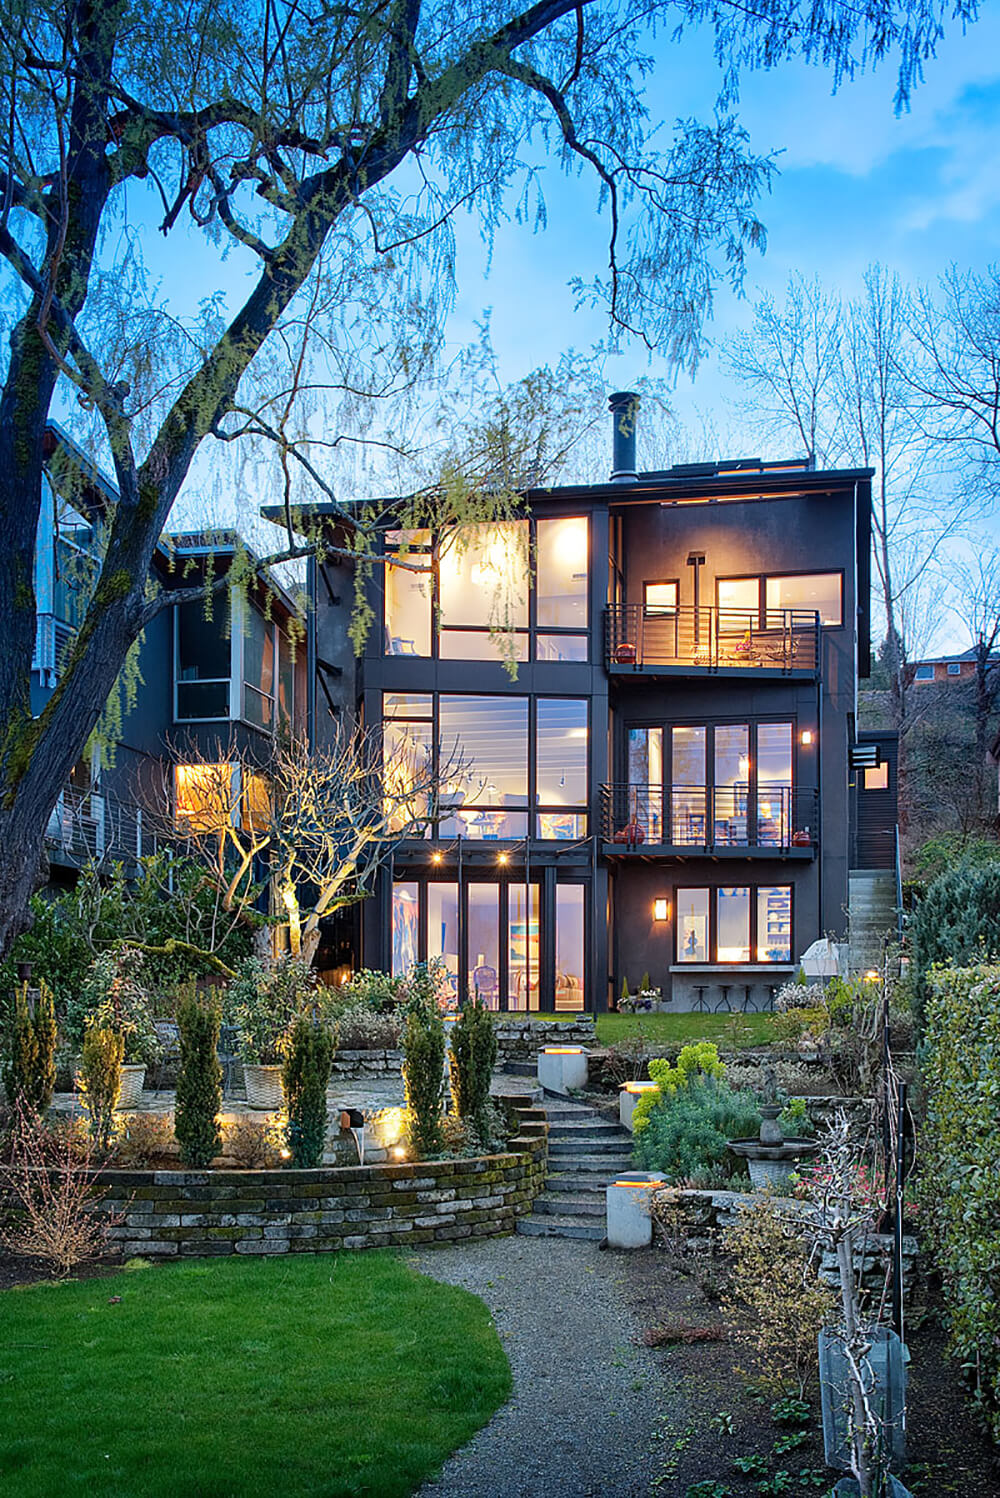 The landscape is immaculately designed, with tiers of stone brick separating layers of lawn, garden, and patio. The lighting design outdoors is as purposeful as the indoor component.